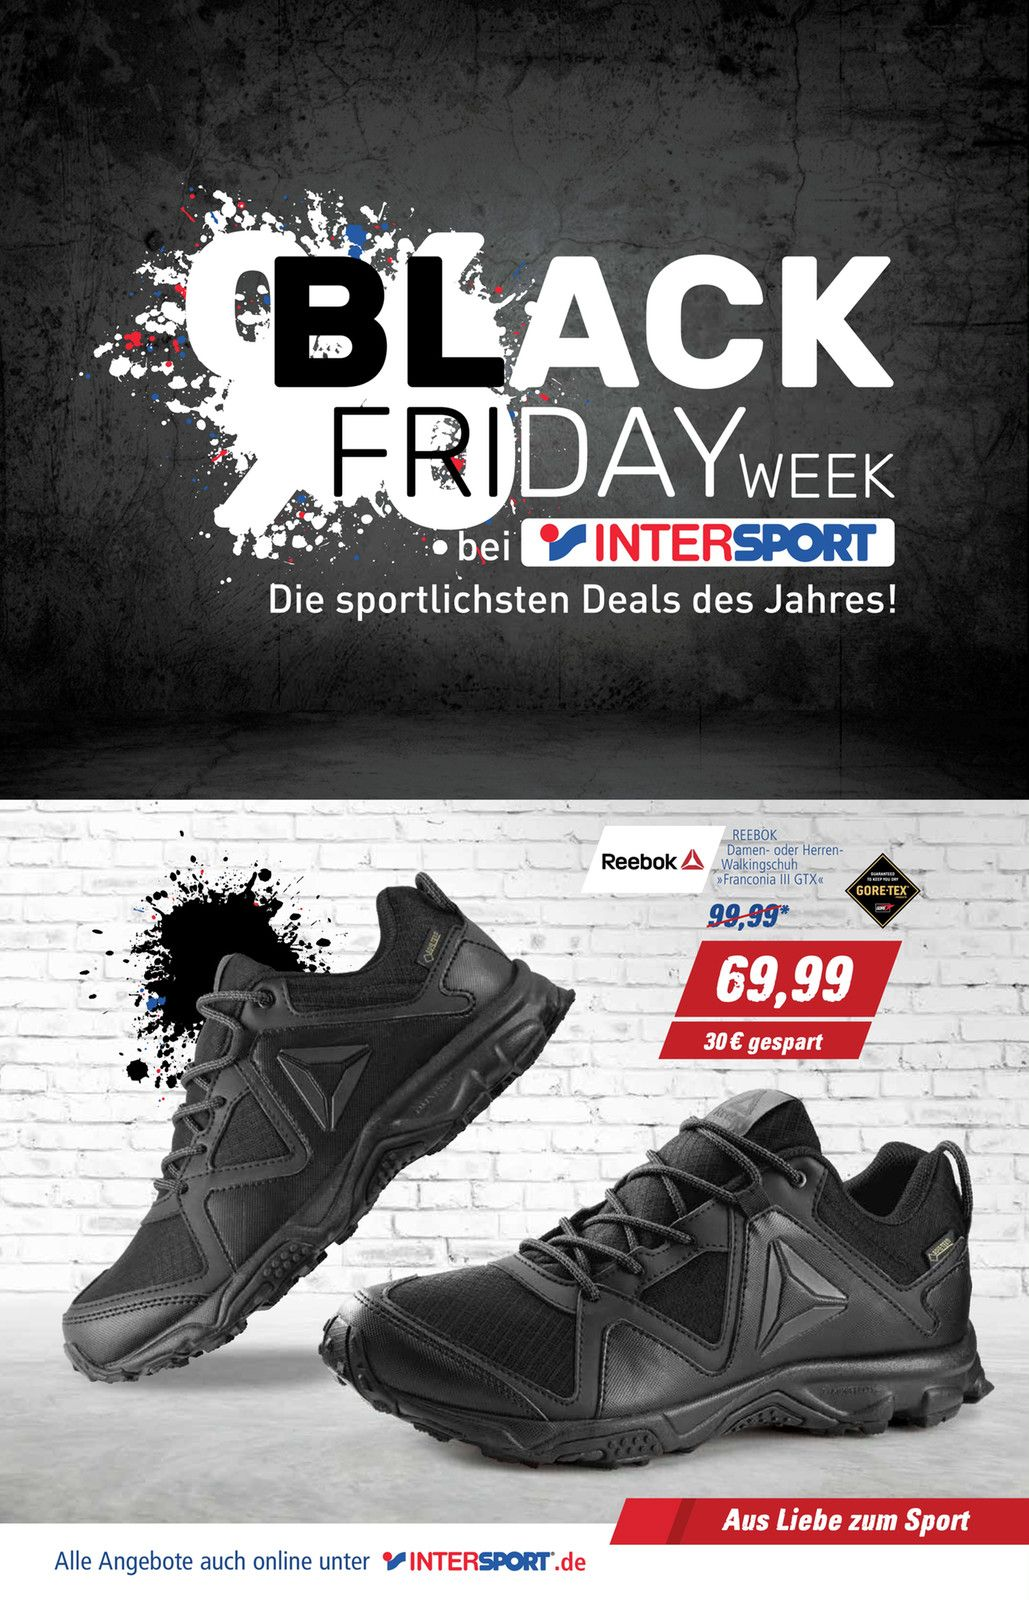 intersport black friday week angebote im aktuellen prospekt. Black Bedroom Furniture Sets. Home Design Ideas